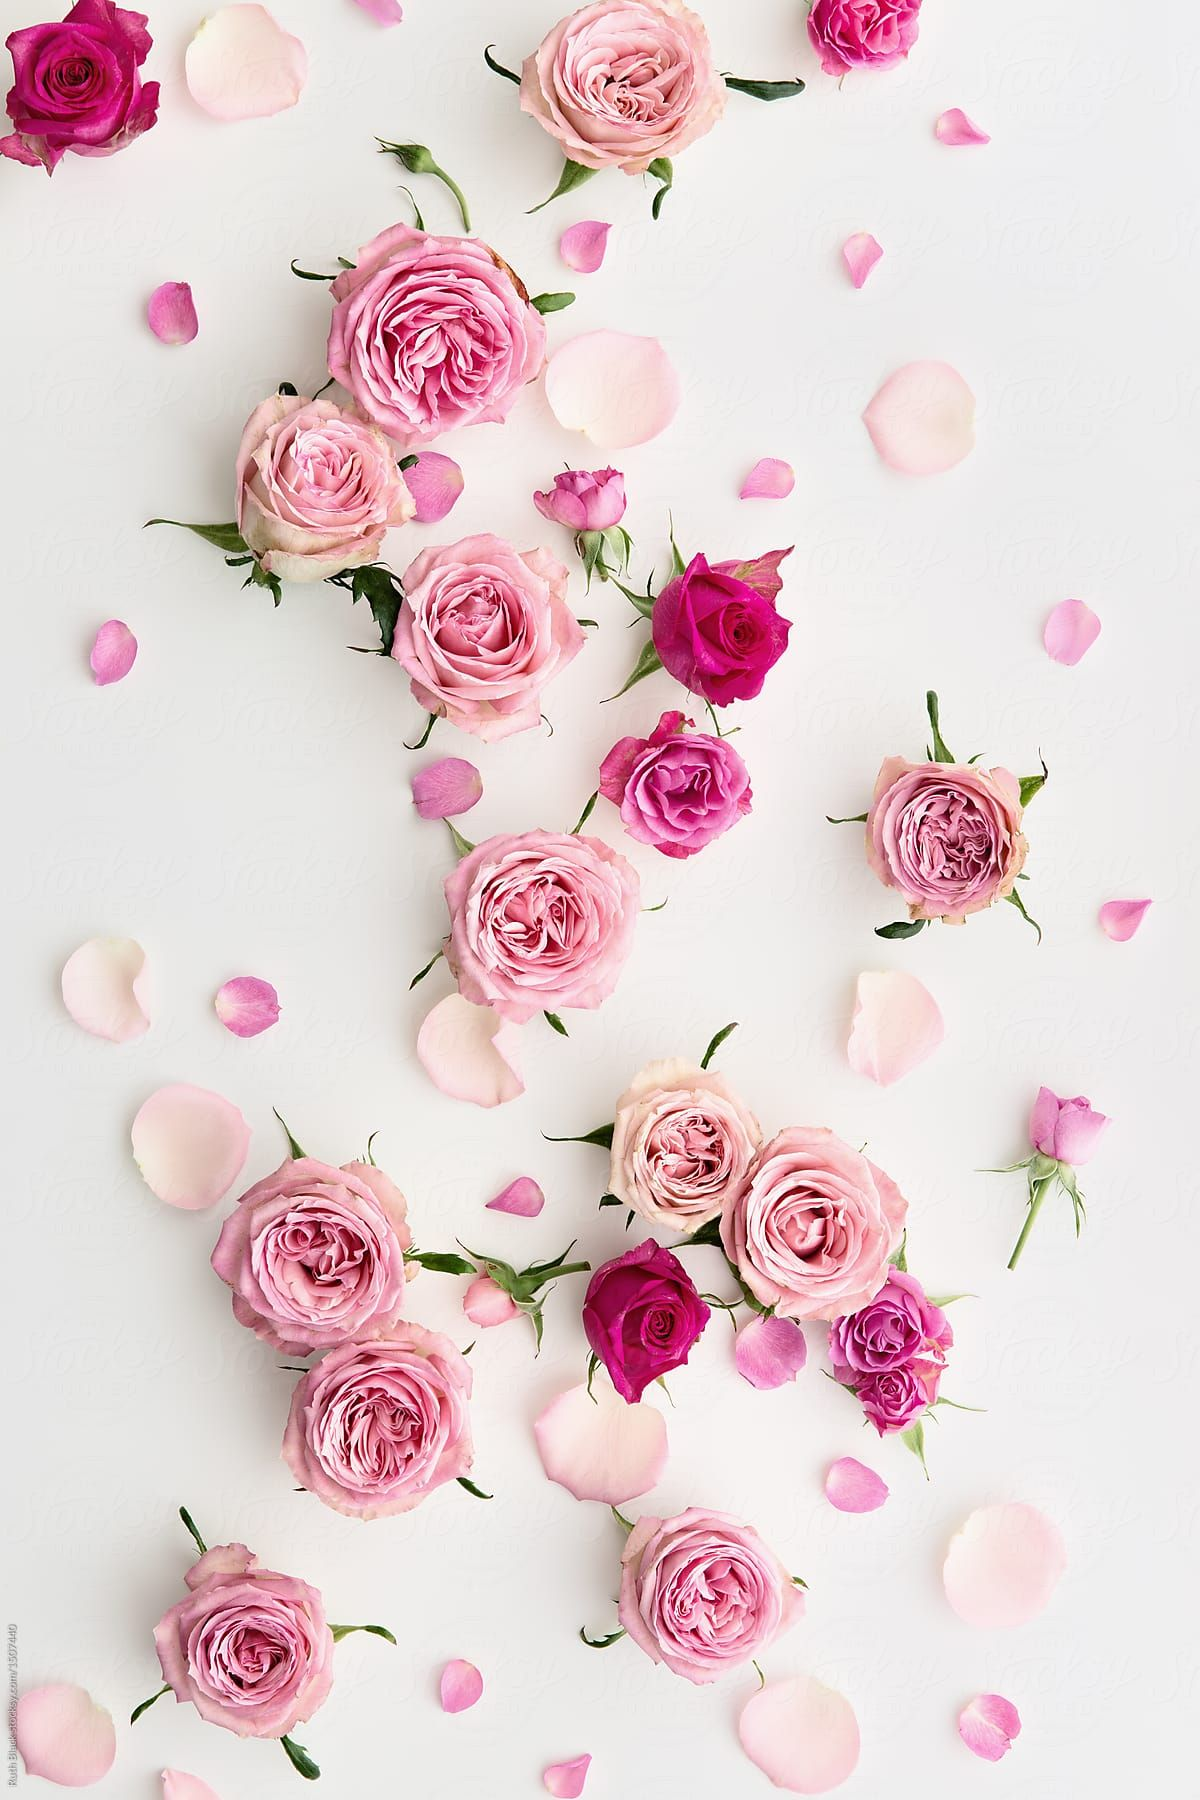 Collection Of Pink Roses And Petals Arranged On A White Background In 2020 Floral Wallpaper Phone Floral Wallpaper Iphone Flower Phone Wallpaper